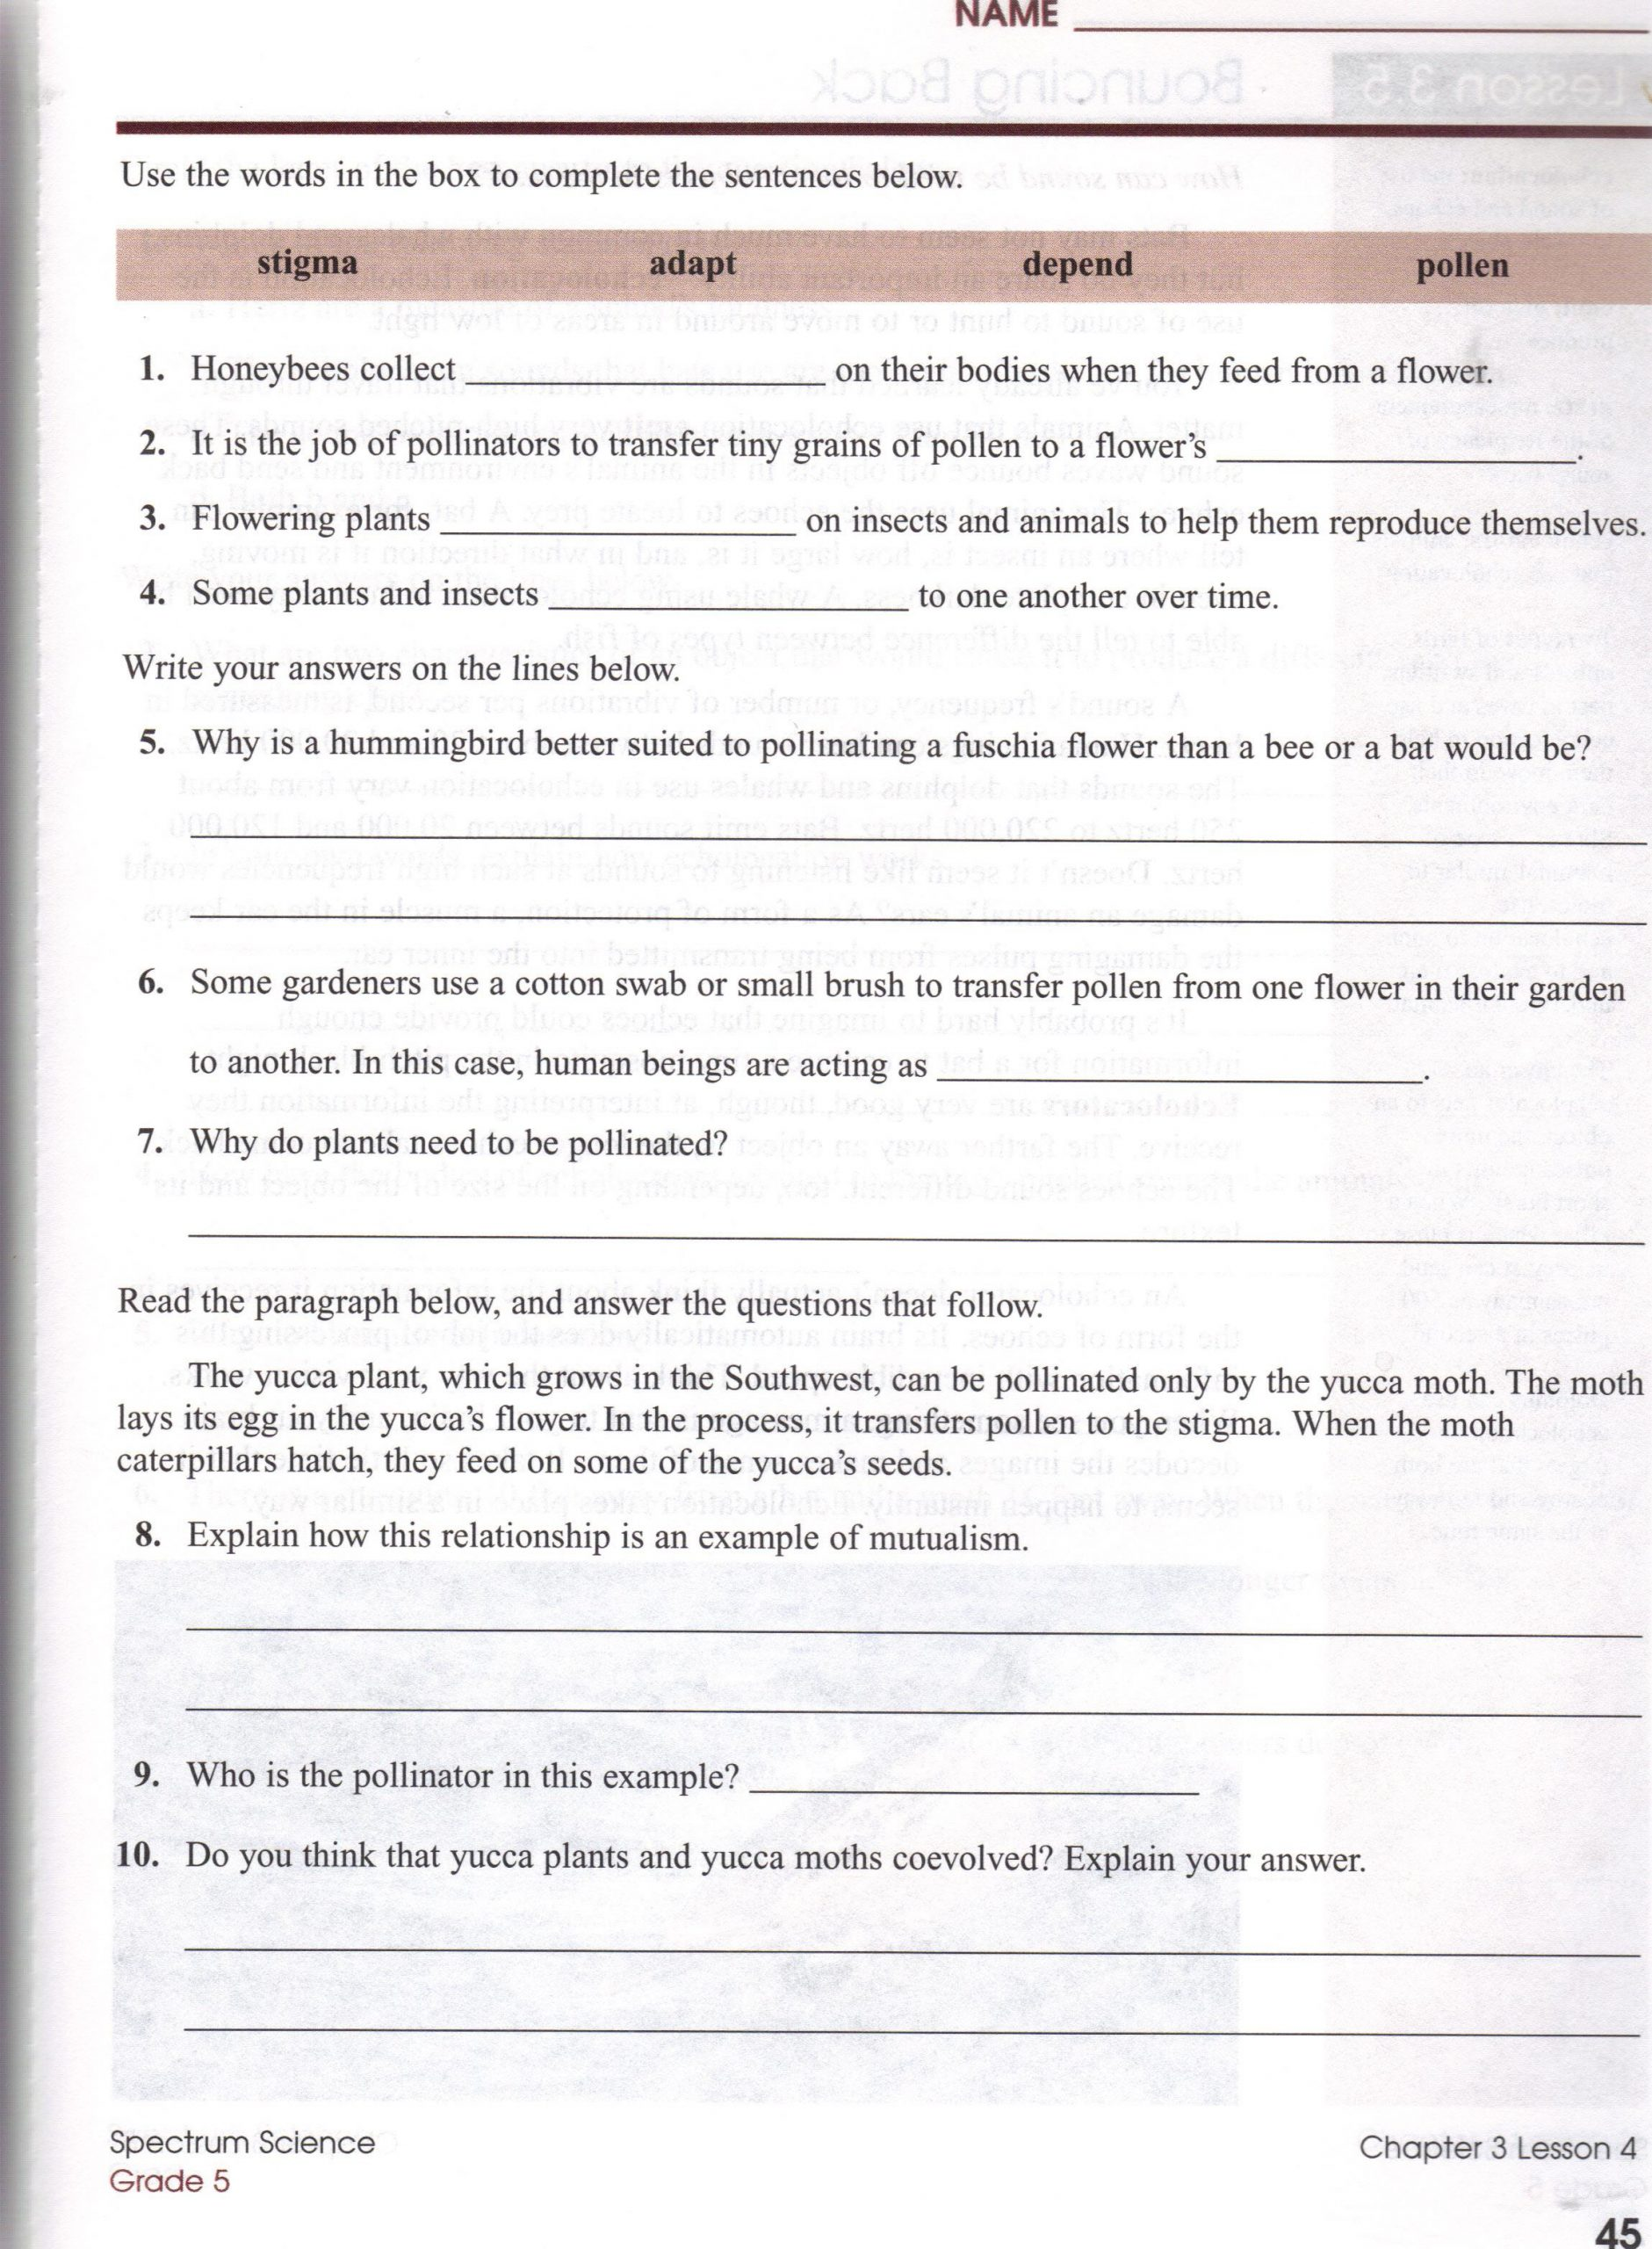 Biomes Worksheet 5th Grade Biomes at A Glance Worksheet Answers